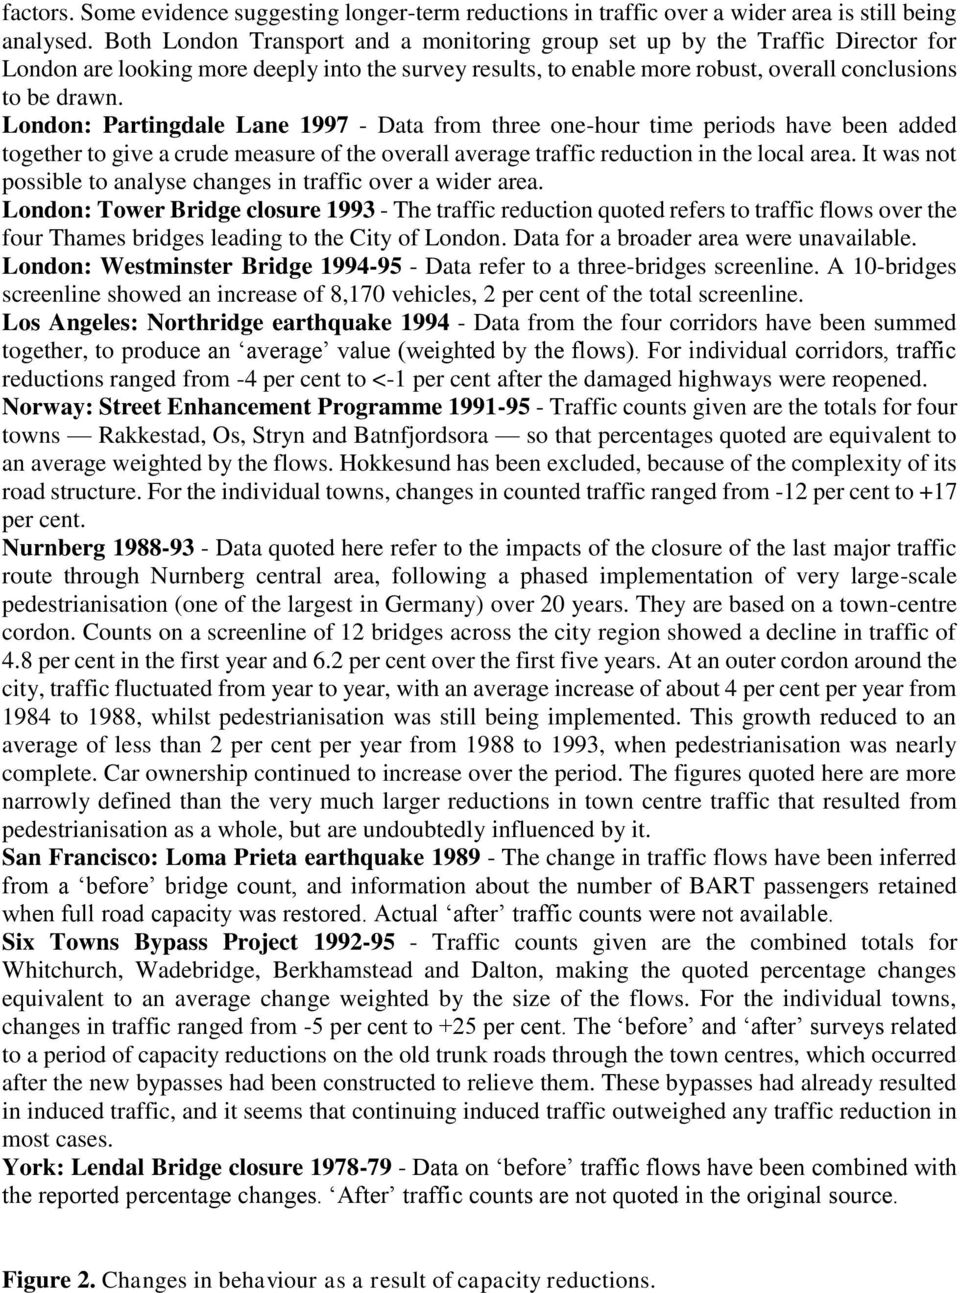 London: Partingdale Lane 1997 - Data from three one-hour time periods have been added together to give a crude measure of the overall average traffic reduction in the local area.